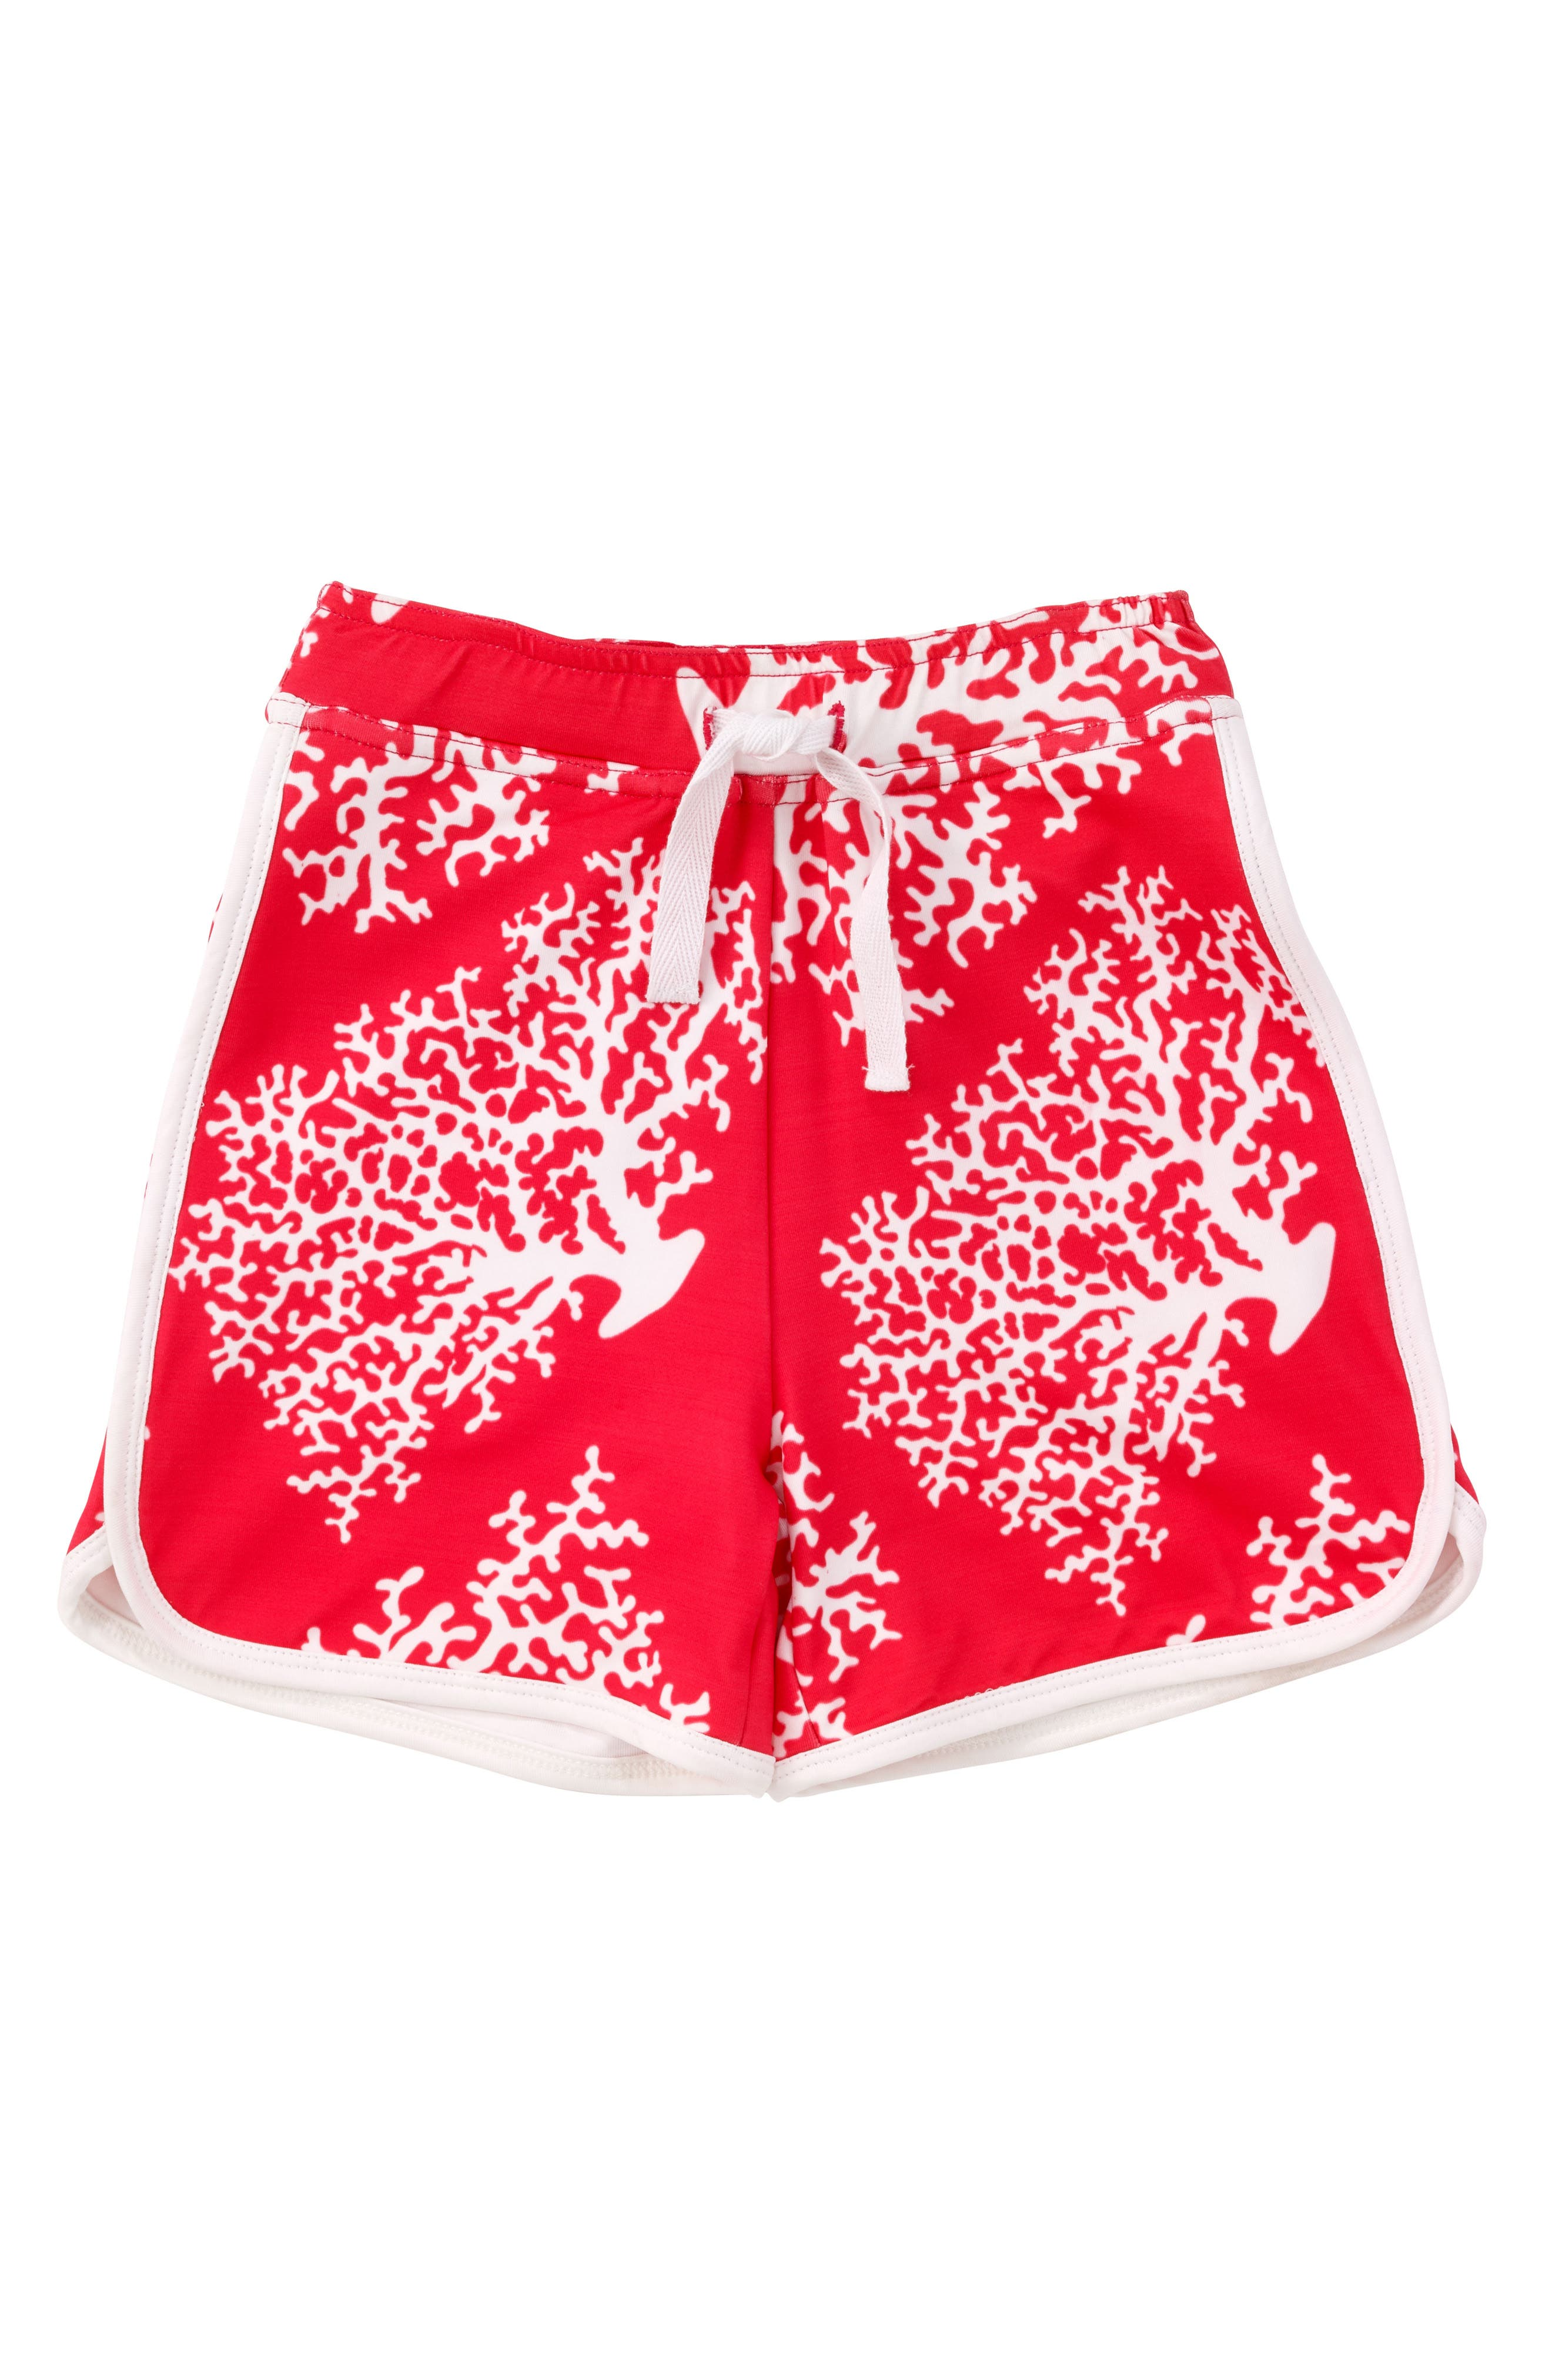 Coral Swim Trunks,                             Main thumbnail 1, color,                             Coral